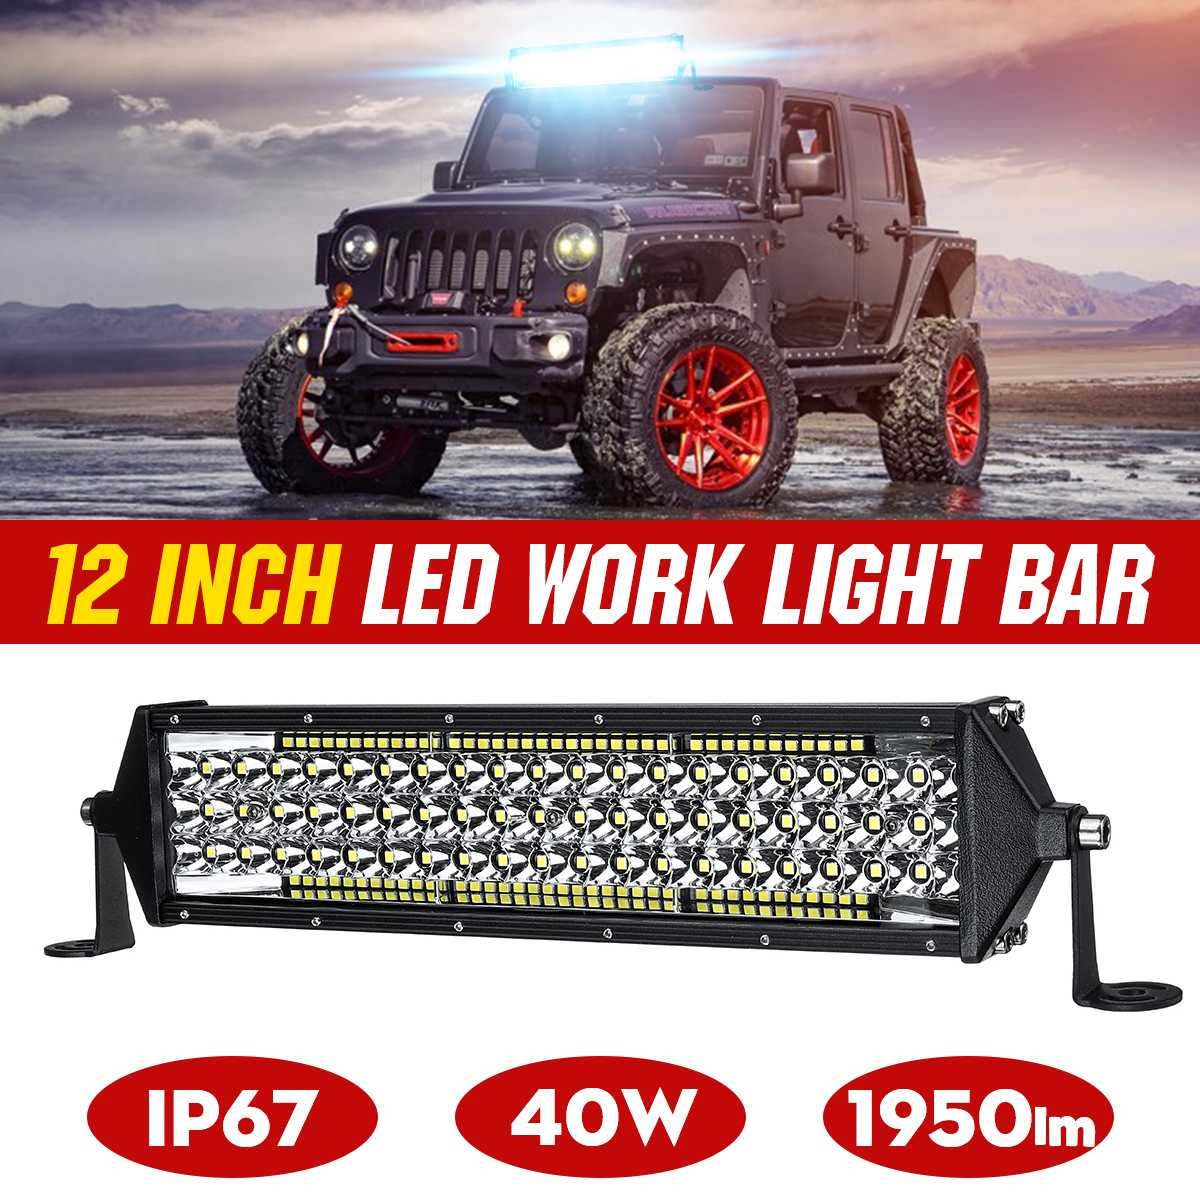 """11"""" 12"""" 22"""" Car LED Bar Work Light Bar White IP67 for Jeep Pickup Tractor Boat OffRoad Off Road 4WD 4x4 Truck SUV ATV Driving"""